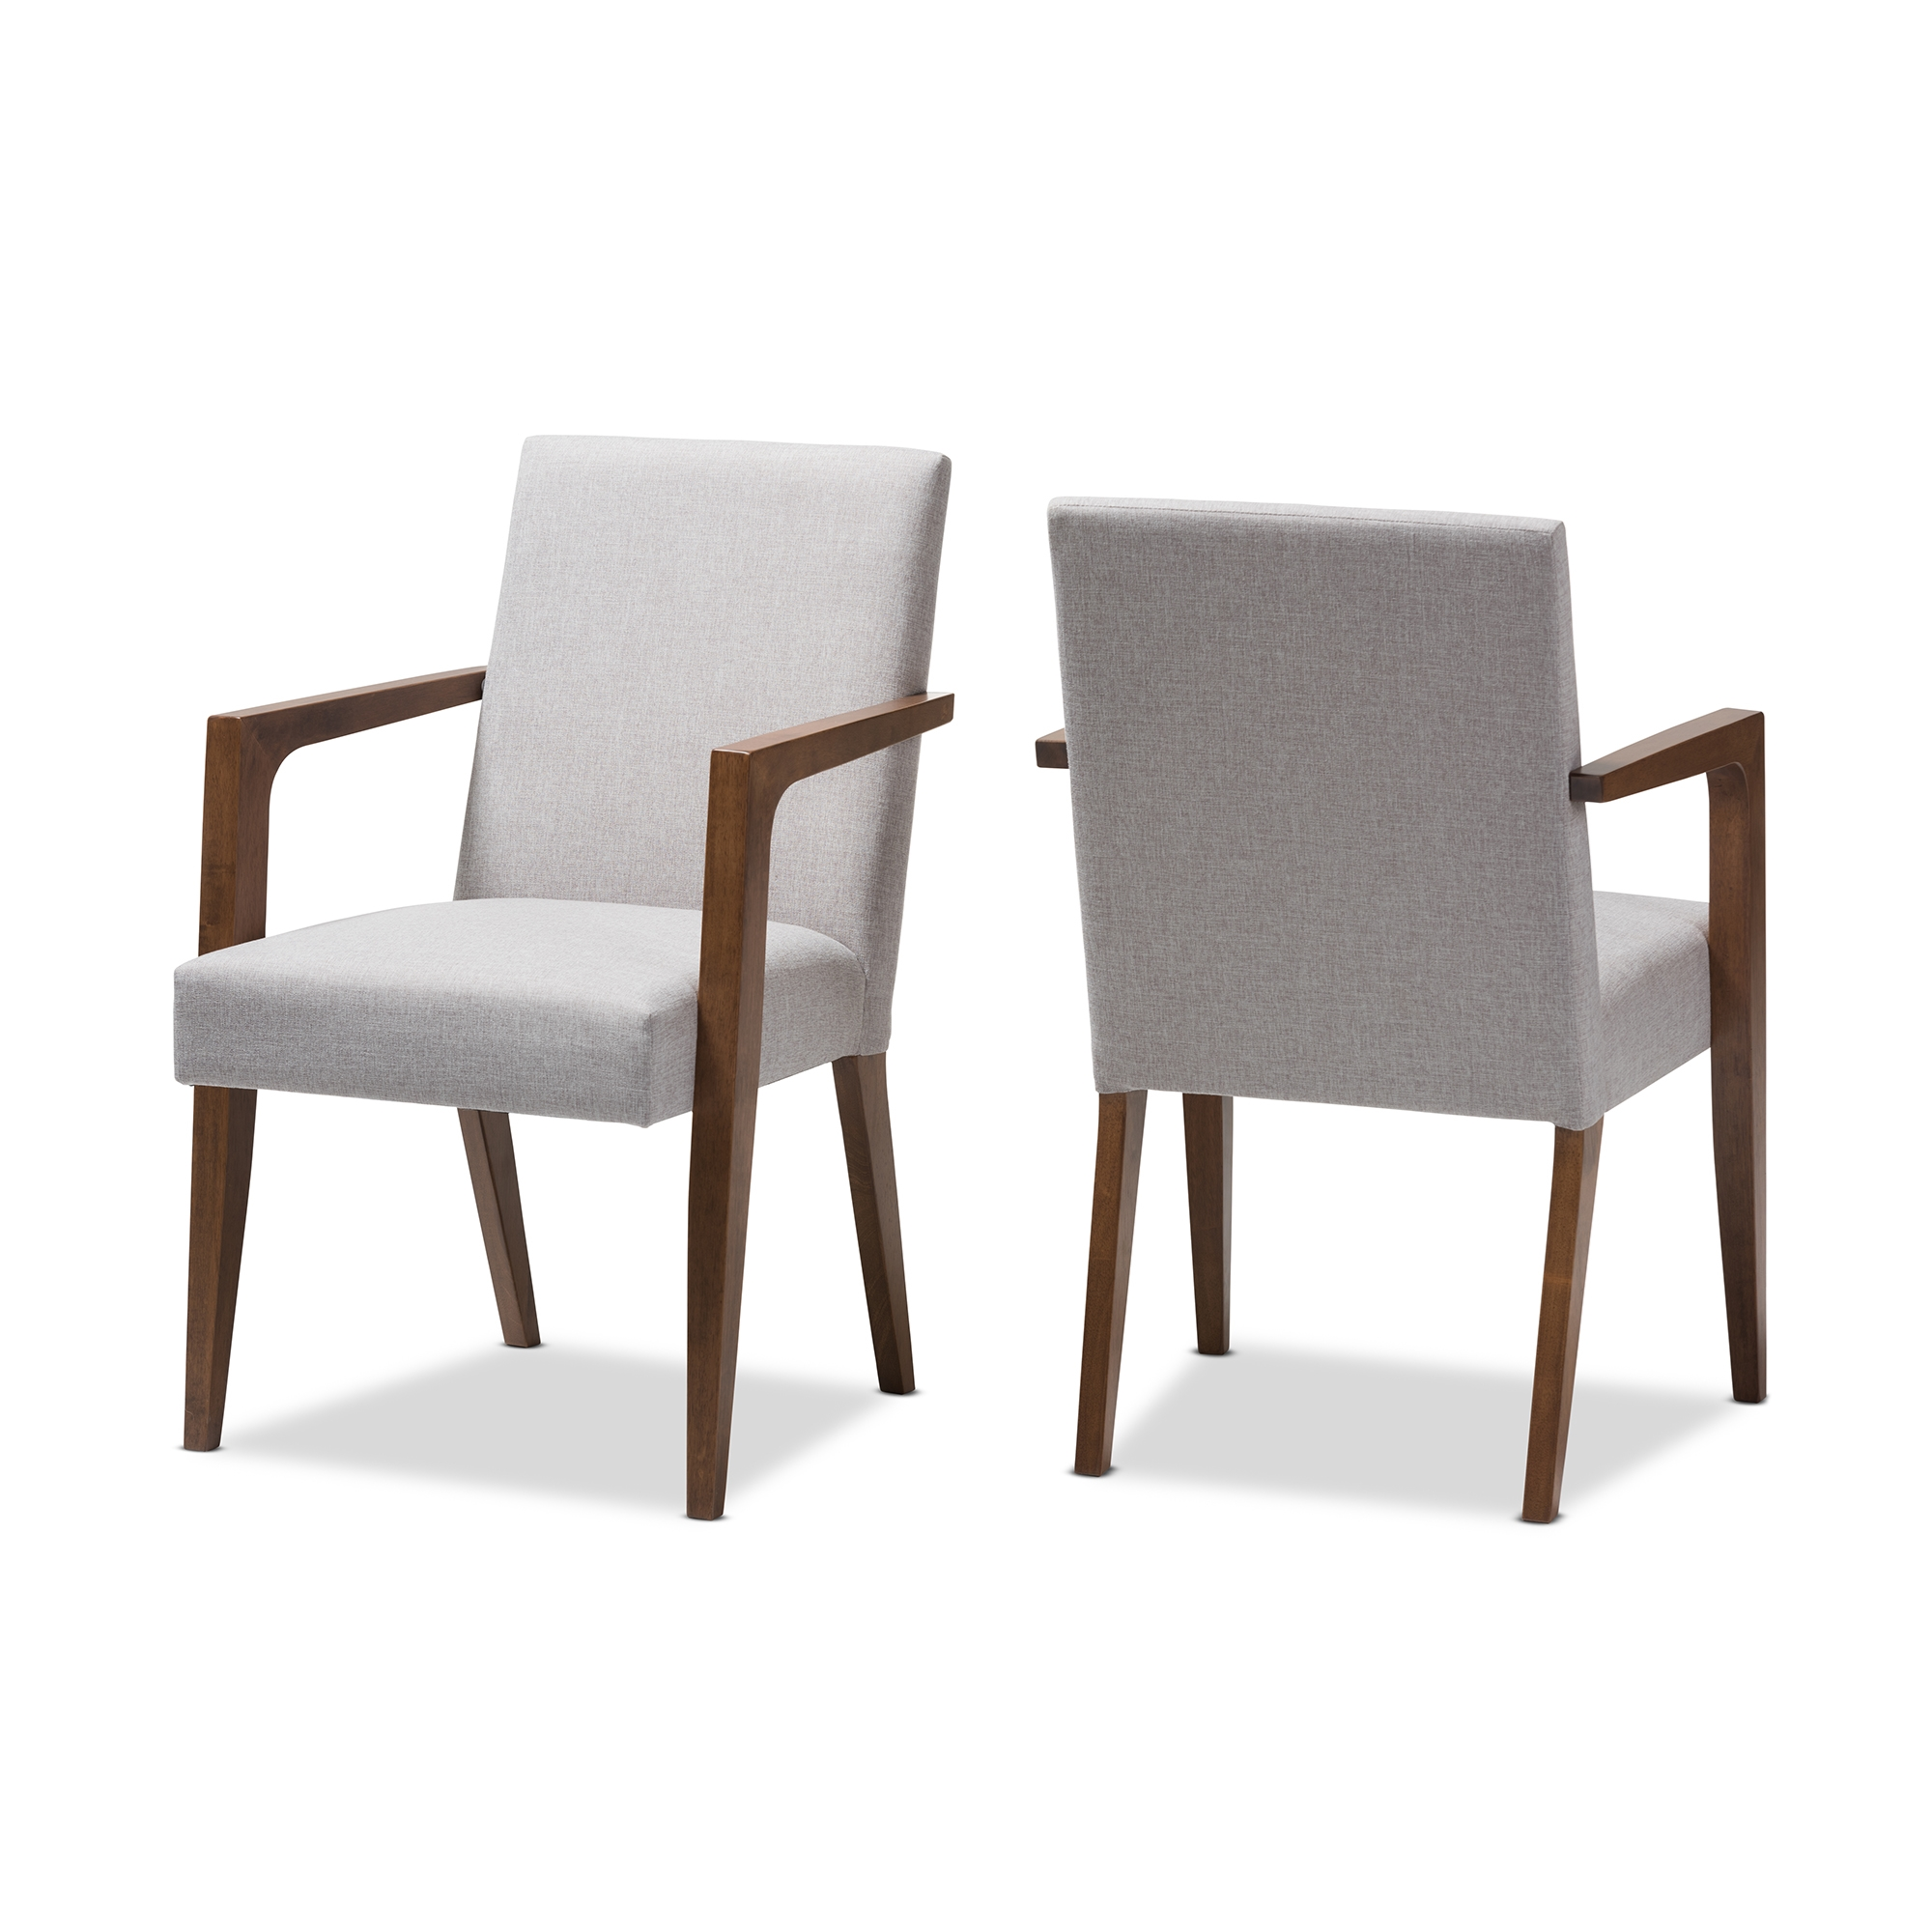 baxton studio andrea midcentury modern greyish beige upholstered wooden armchair set of 2